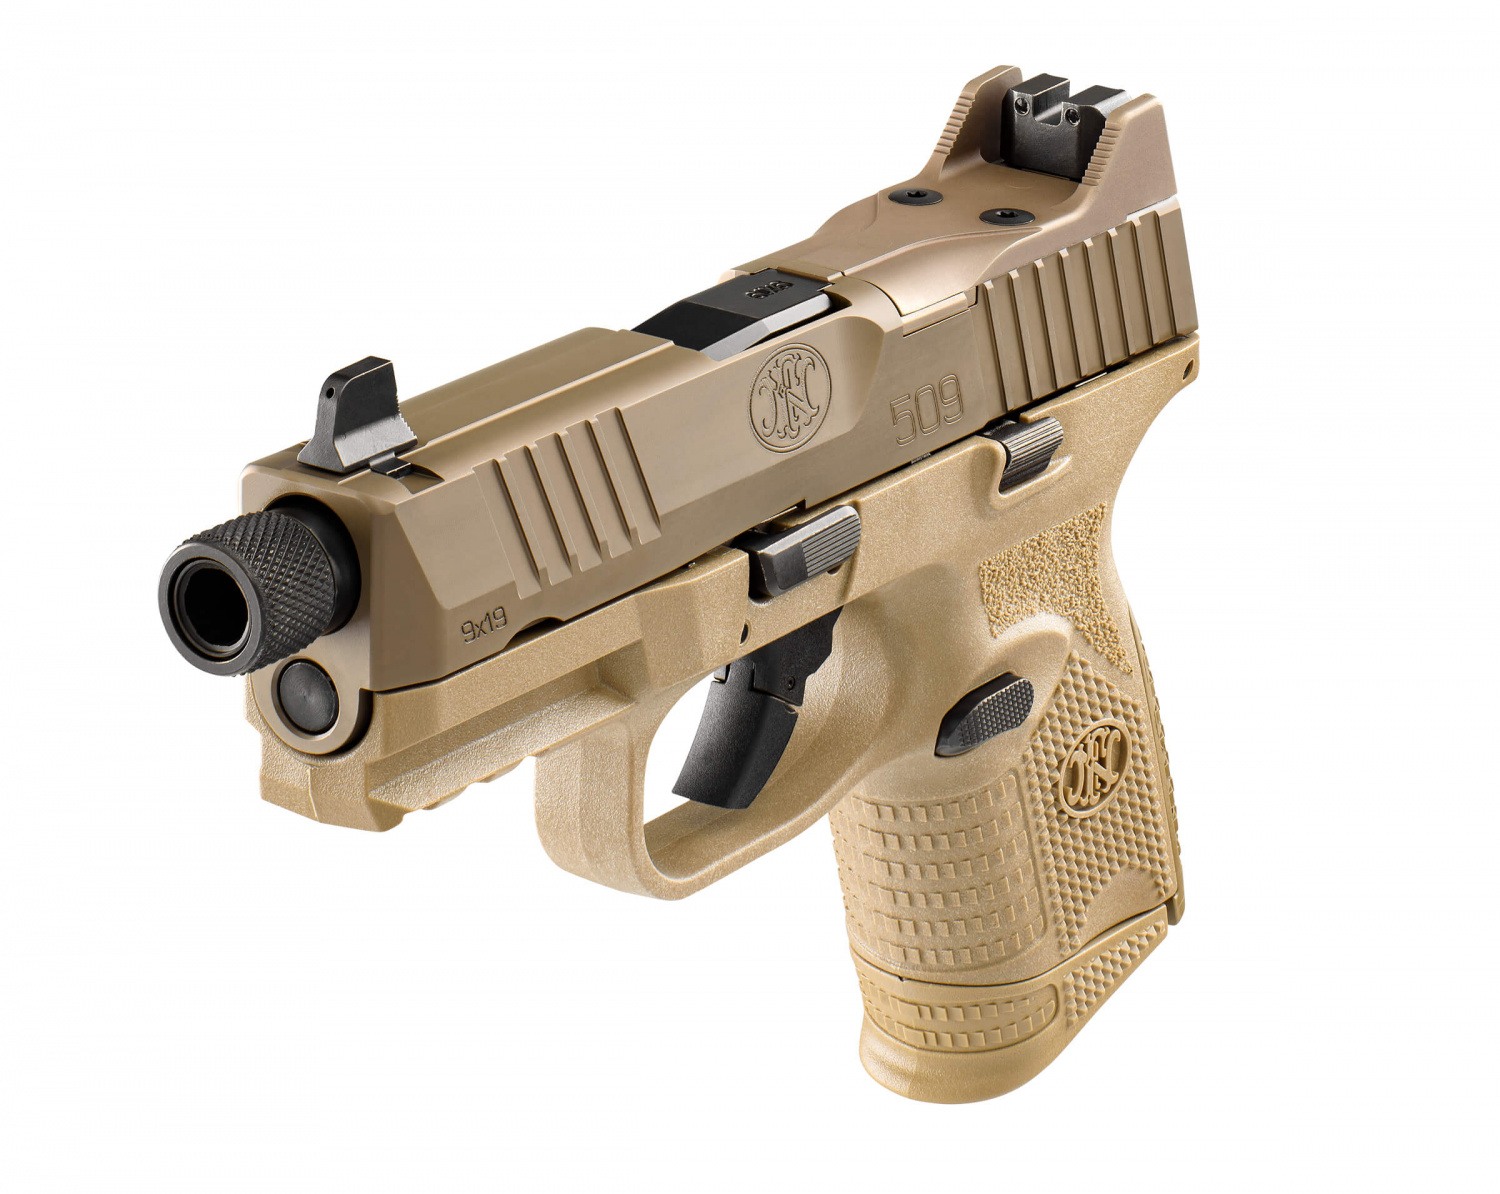 Optics And Suppressor Ready! New FN 509 Compact Tactical Pistol